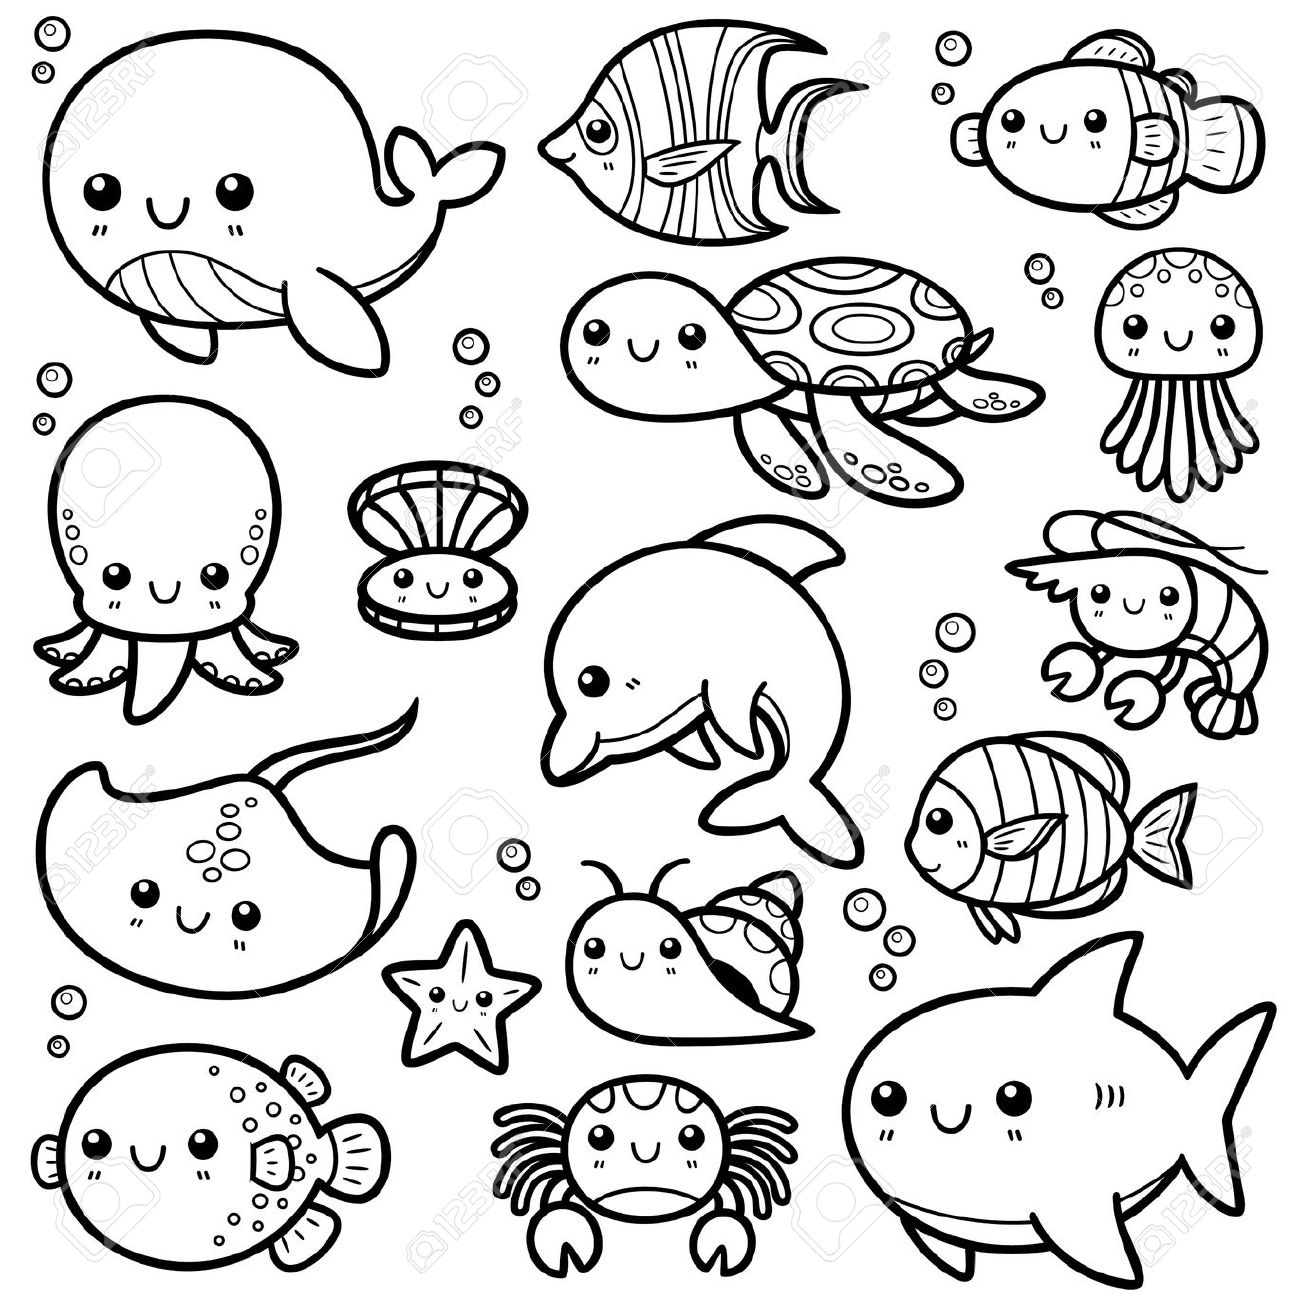 ocean animals printable coloring pages best ocean animals coloring pages for kids best coloring ocean printable animals pages coloring